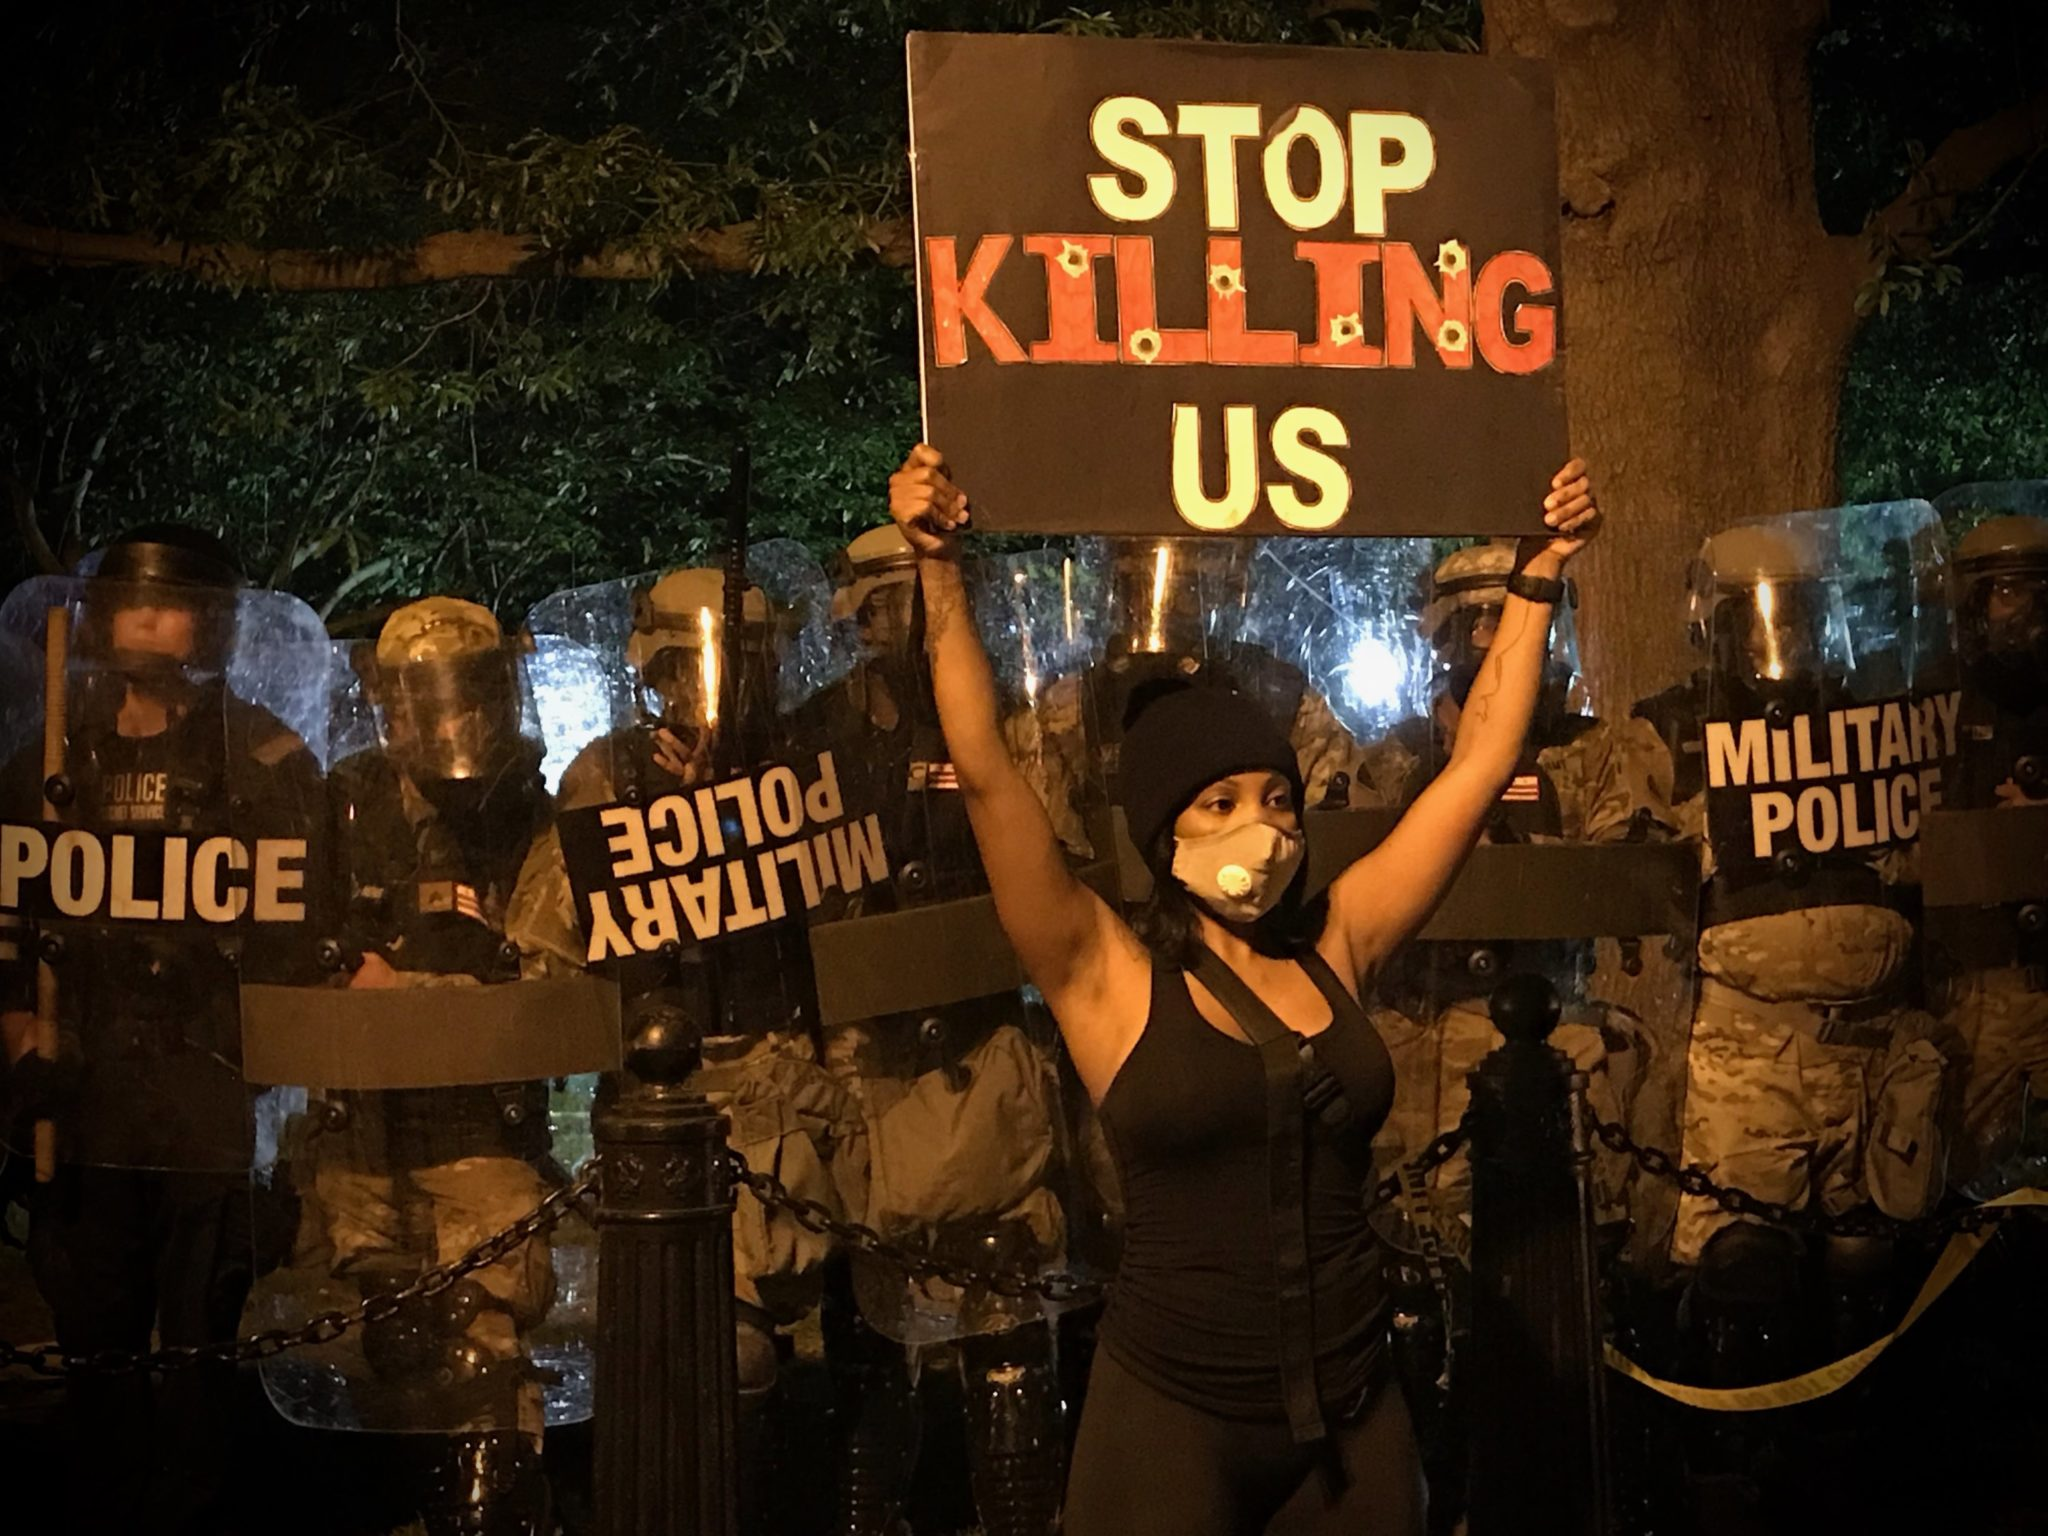 """Stop Killing Us"""": Scenes From the DC Protests 